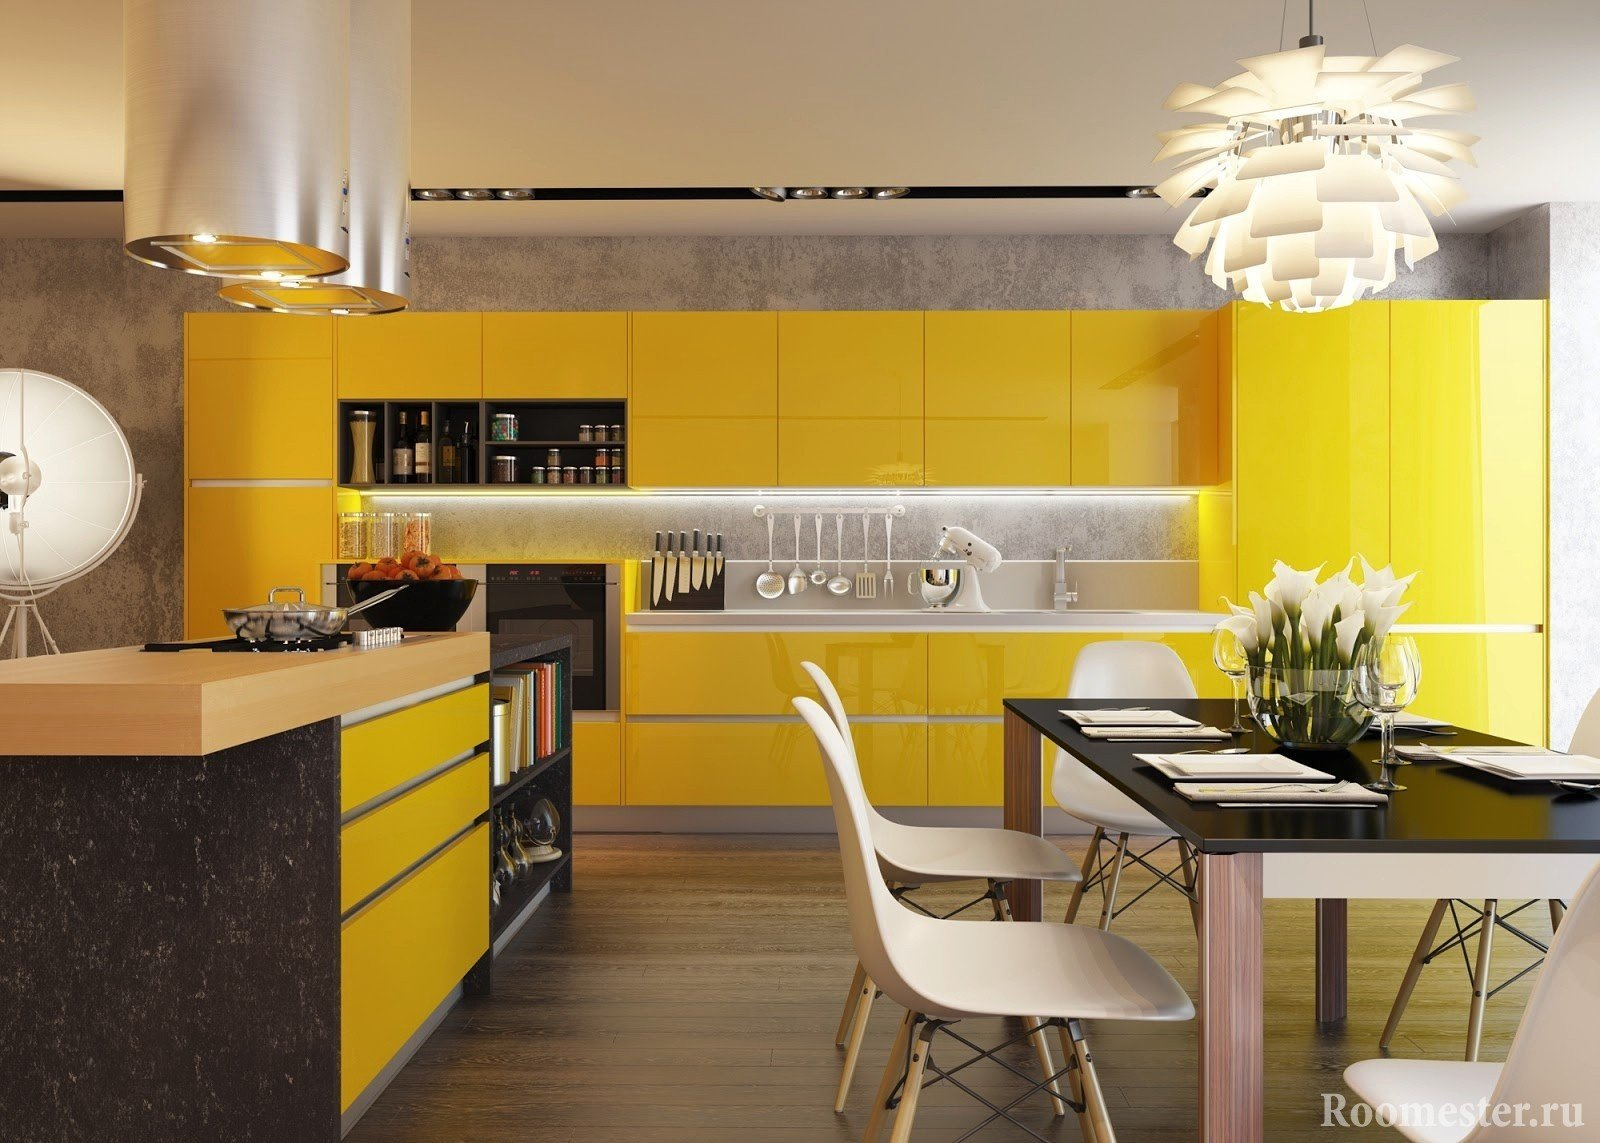 Kitchen with yellow facades and black table